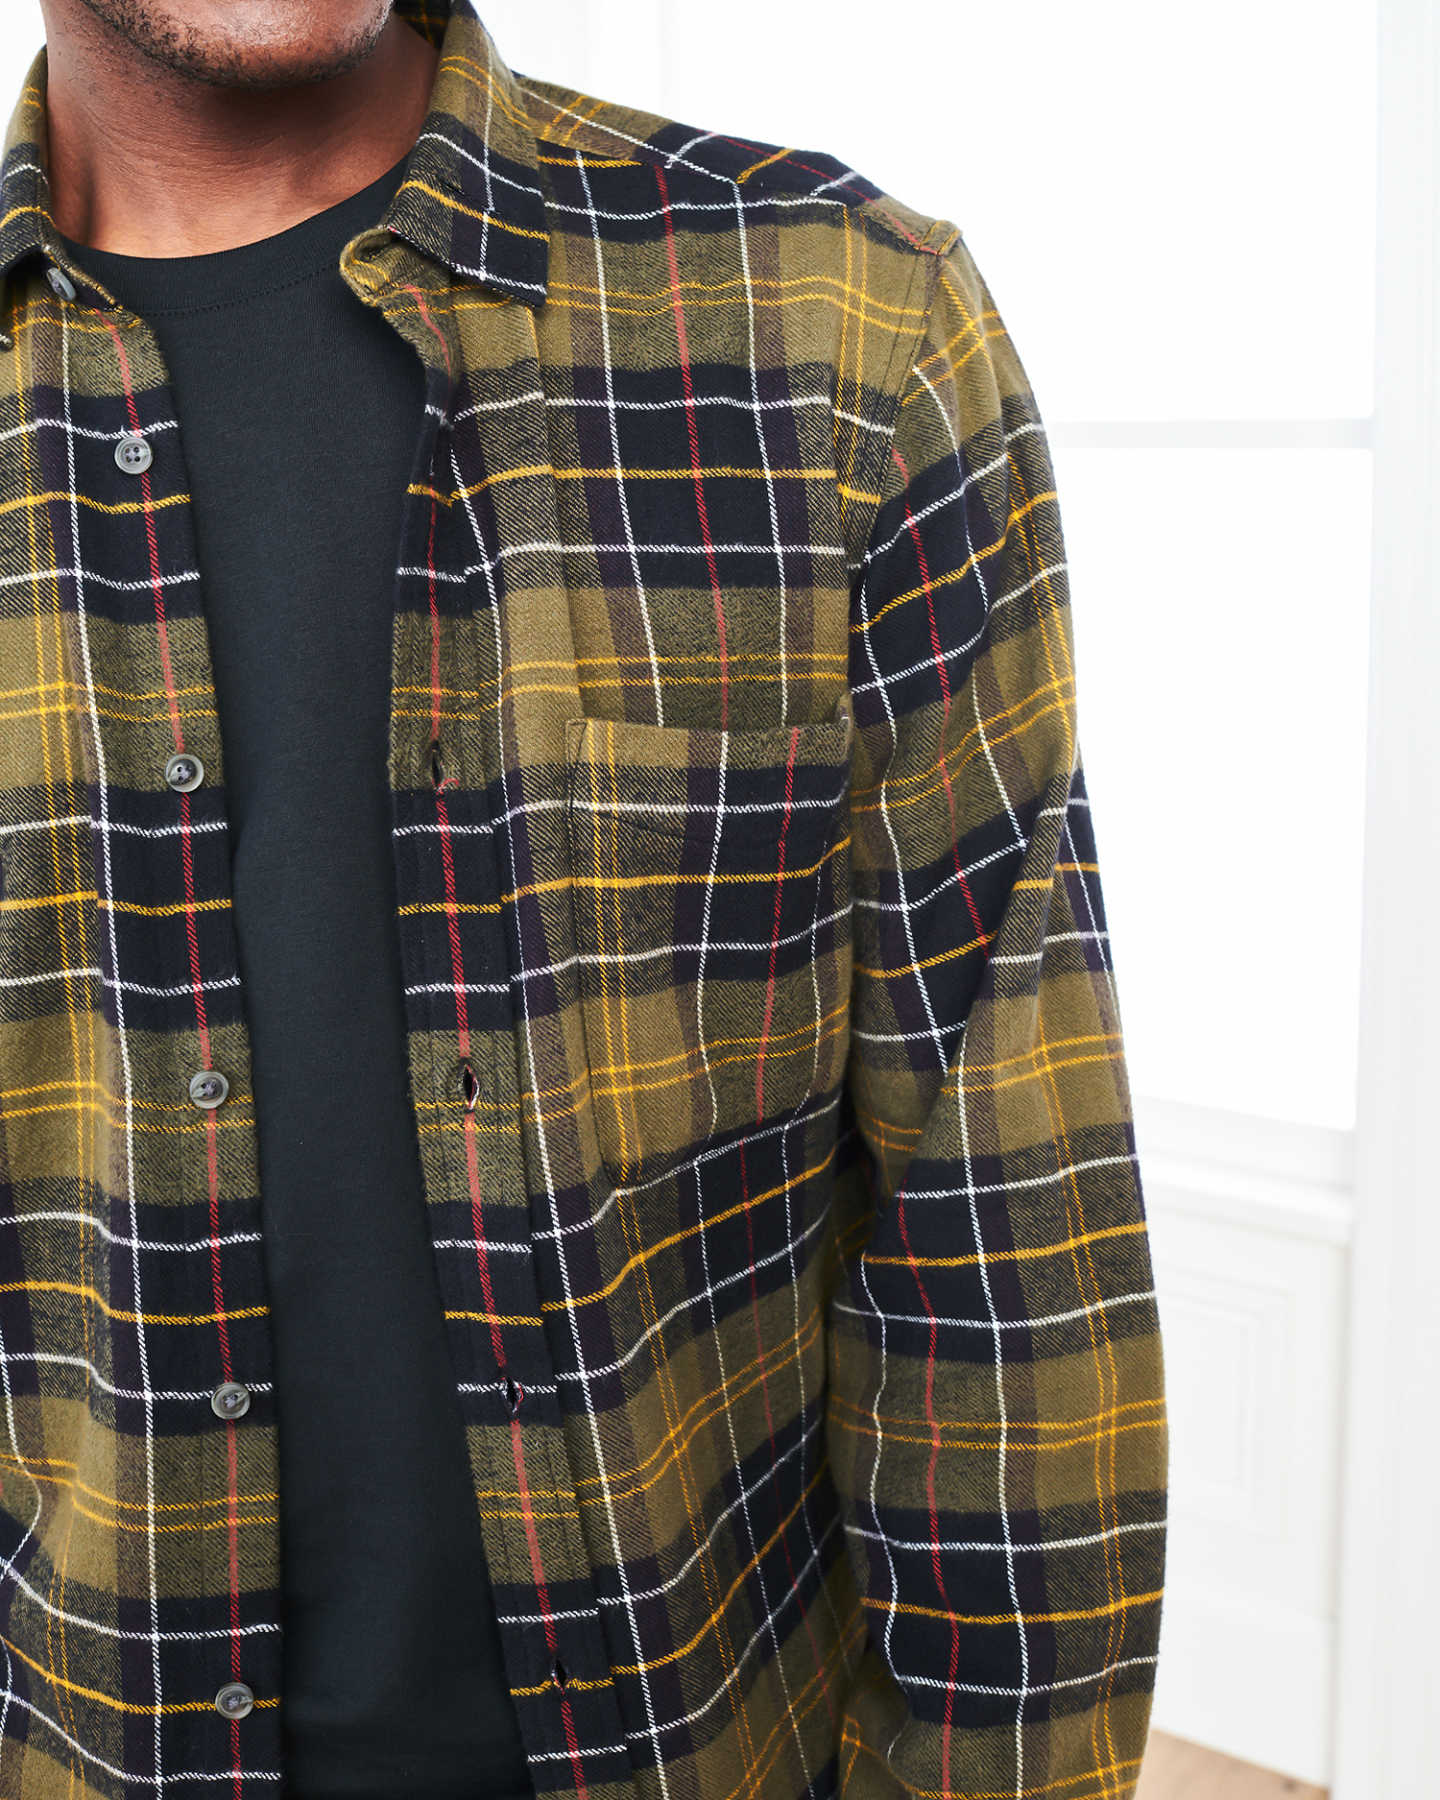 Soft Brushed Plaid Flannel Shirt - undefined - 5